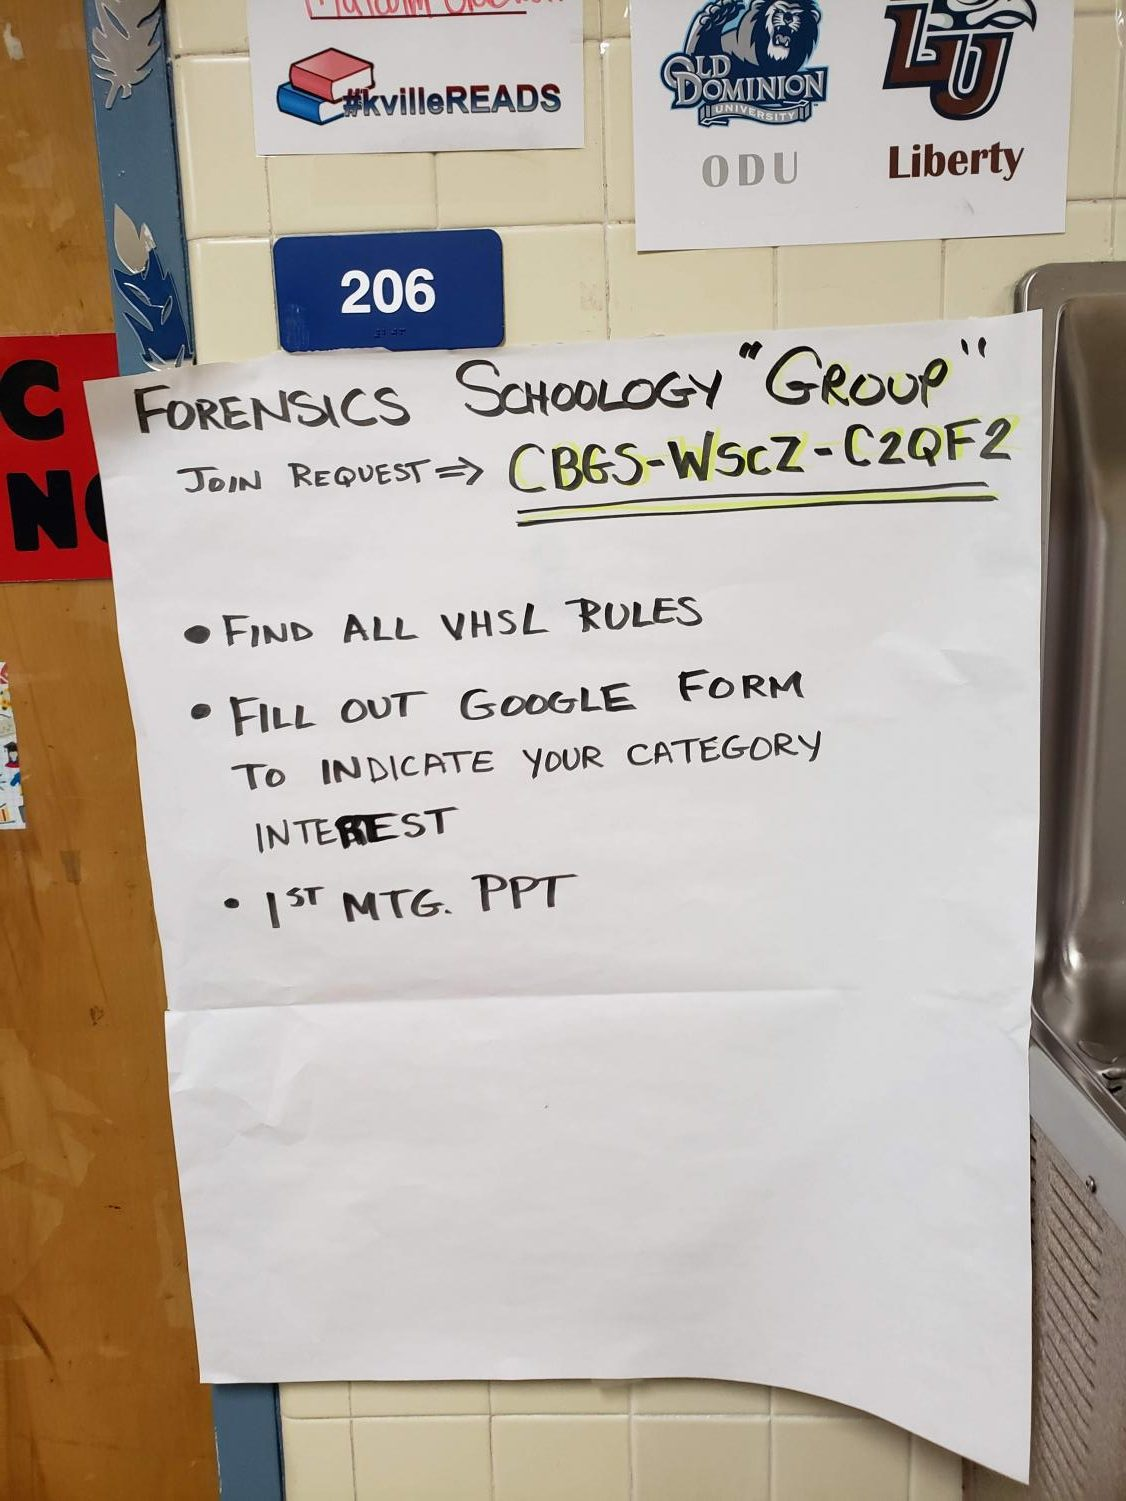 Poster hanging outside Ms. Boubouheropoulos' door with all of the Schoology group information. Students who are interested in joining the club, or members who want more information about competitions can find that through joining the group on Schoology.